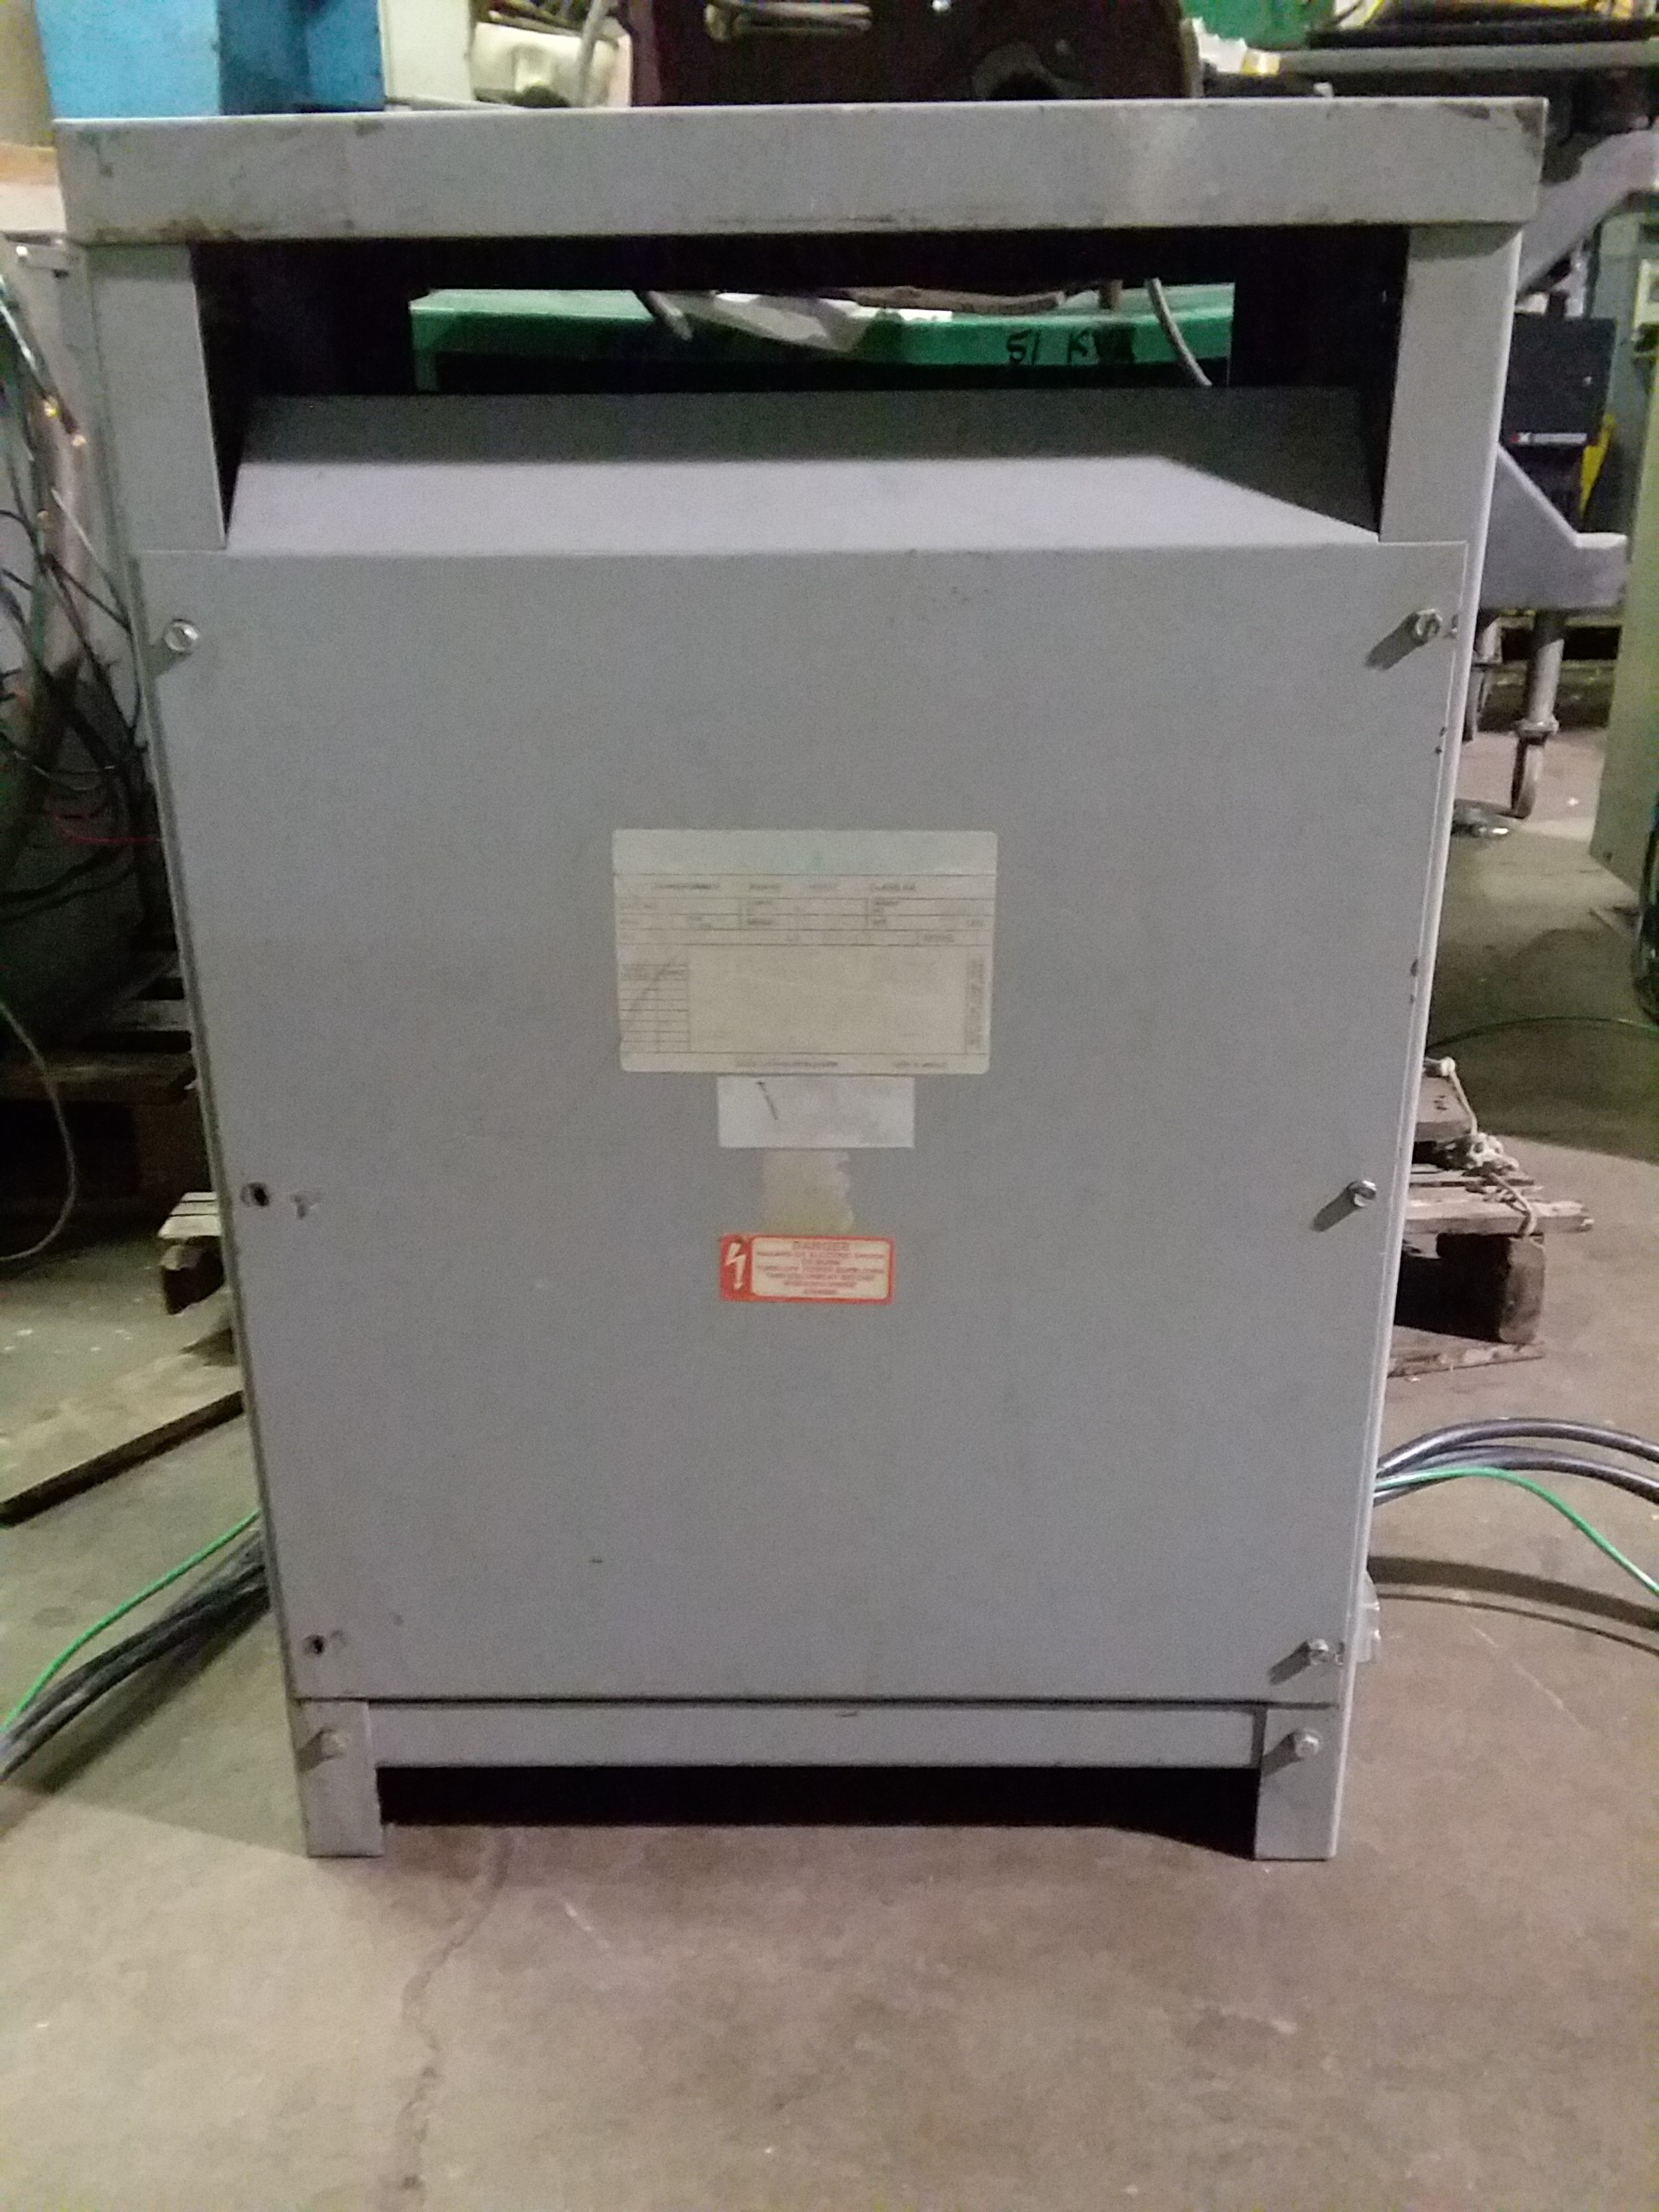 (1) PREOWNED 3 PHASE TRANSFORMER, 30 KVA, 480 VOLT PRIMARY, <br>240/120 VOLT SECONDARY